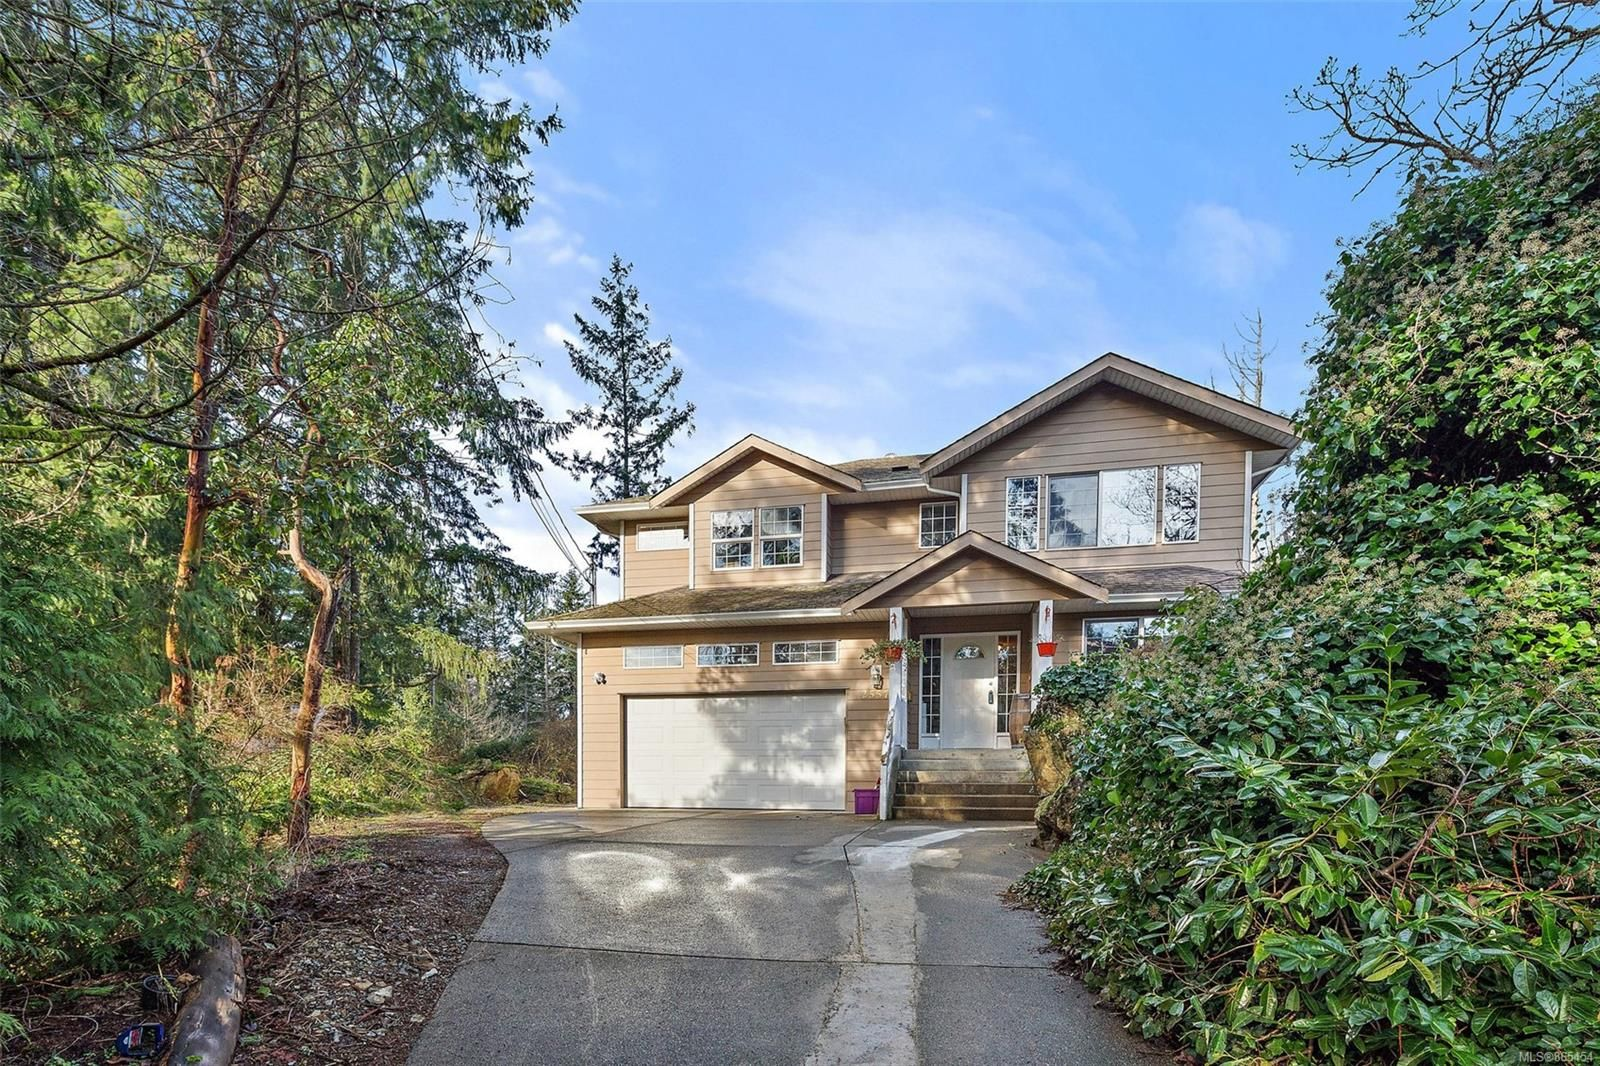 Main Photo: 2557 Jeanine Dr in : La Mill Hill House for sale (Langford)  : MLS®# 865454